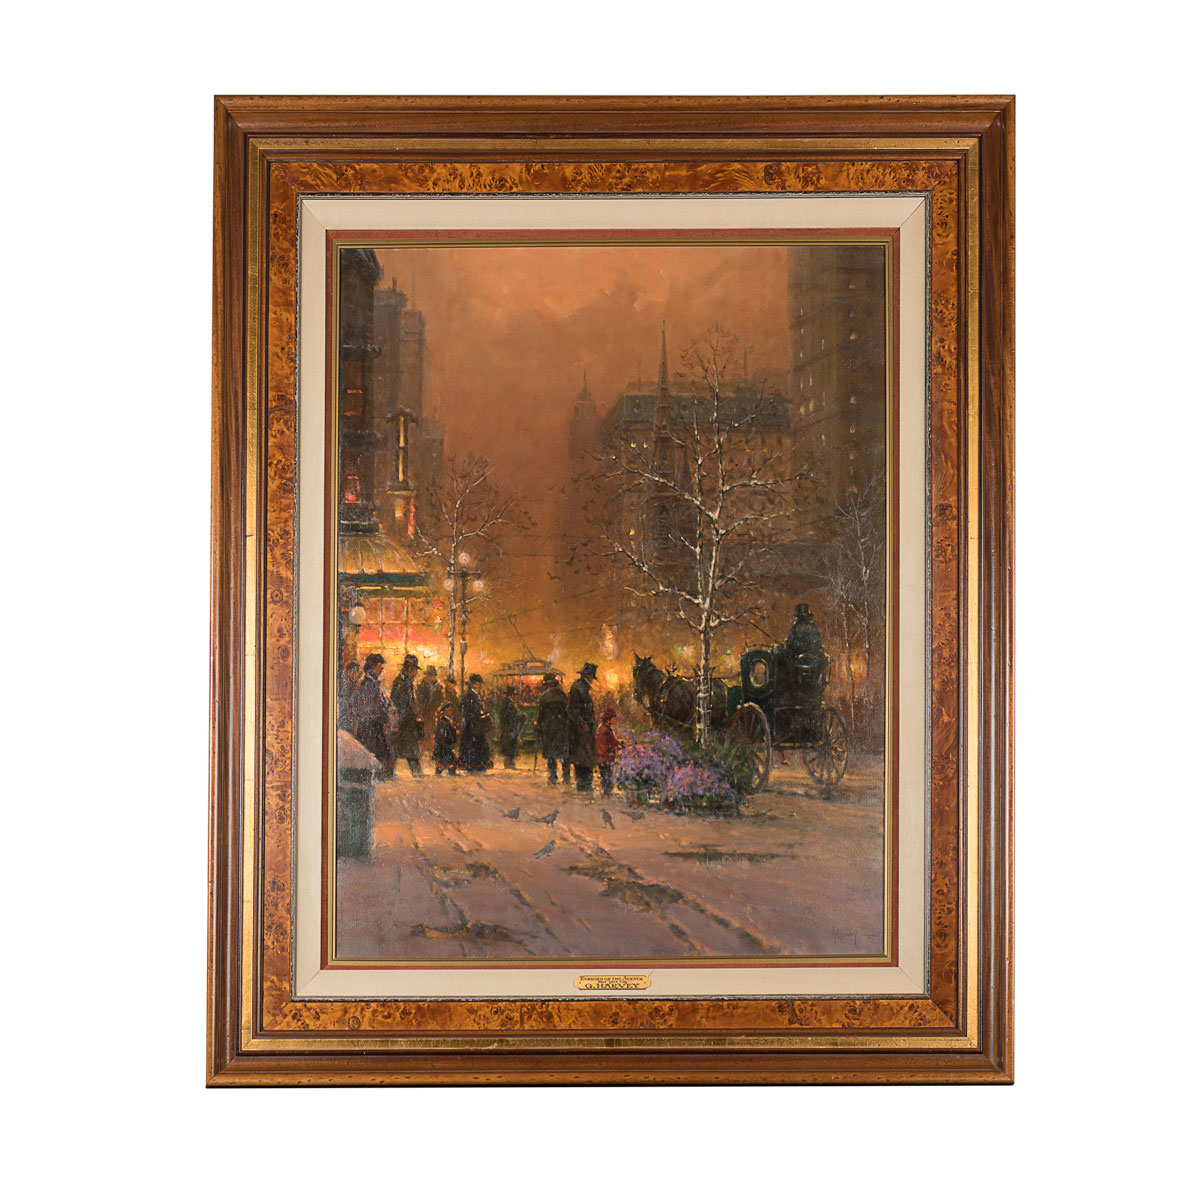 Evening on the Avenue, New York City painting by G. Harvey